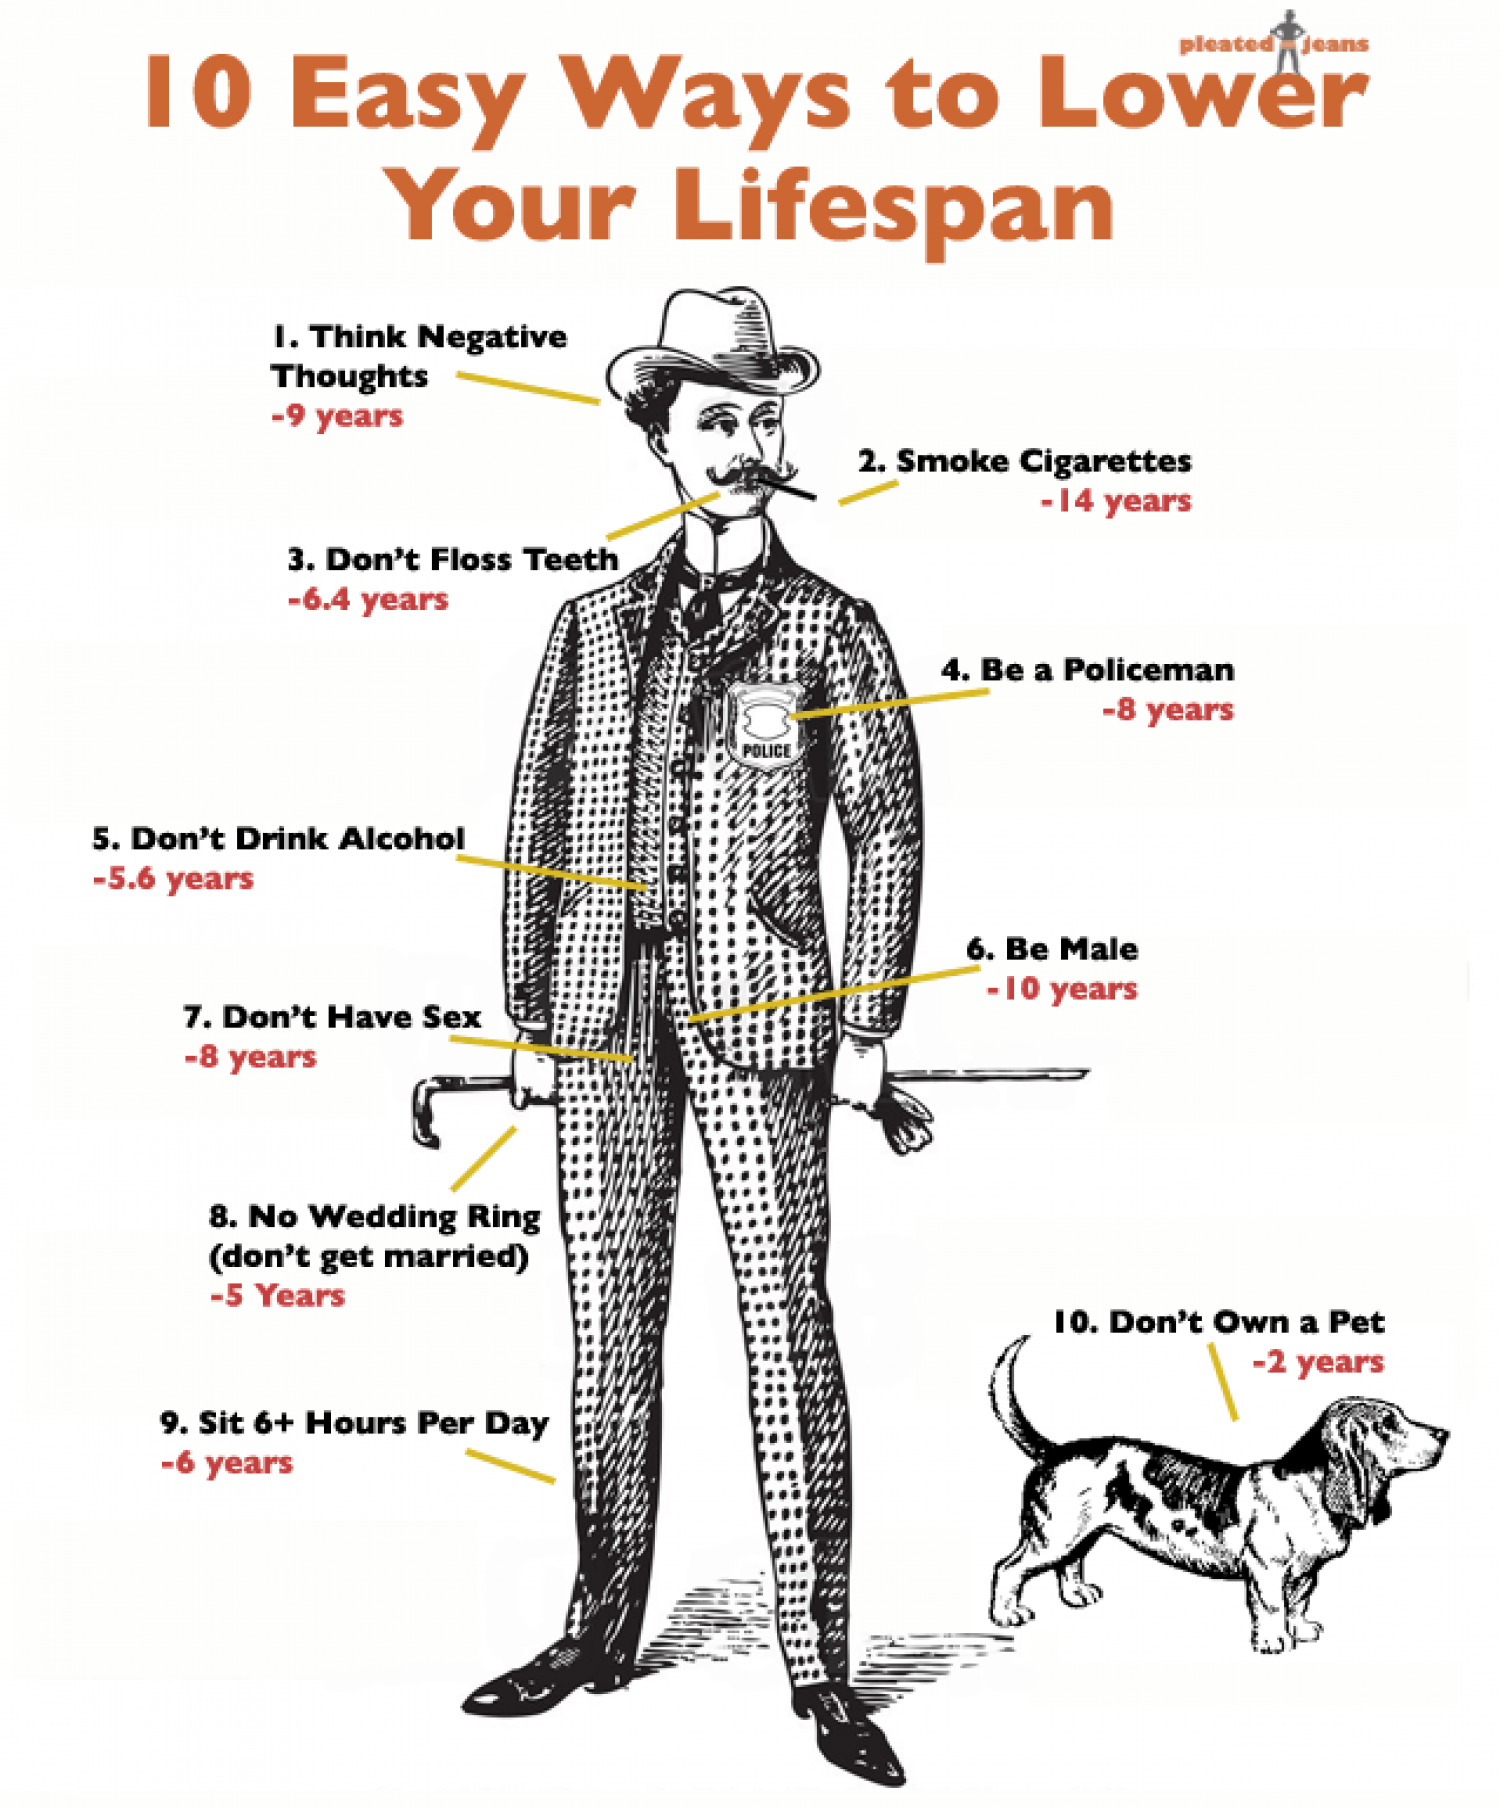 How to Lower Your Lifespan Infographic